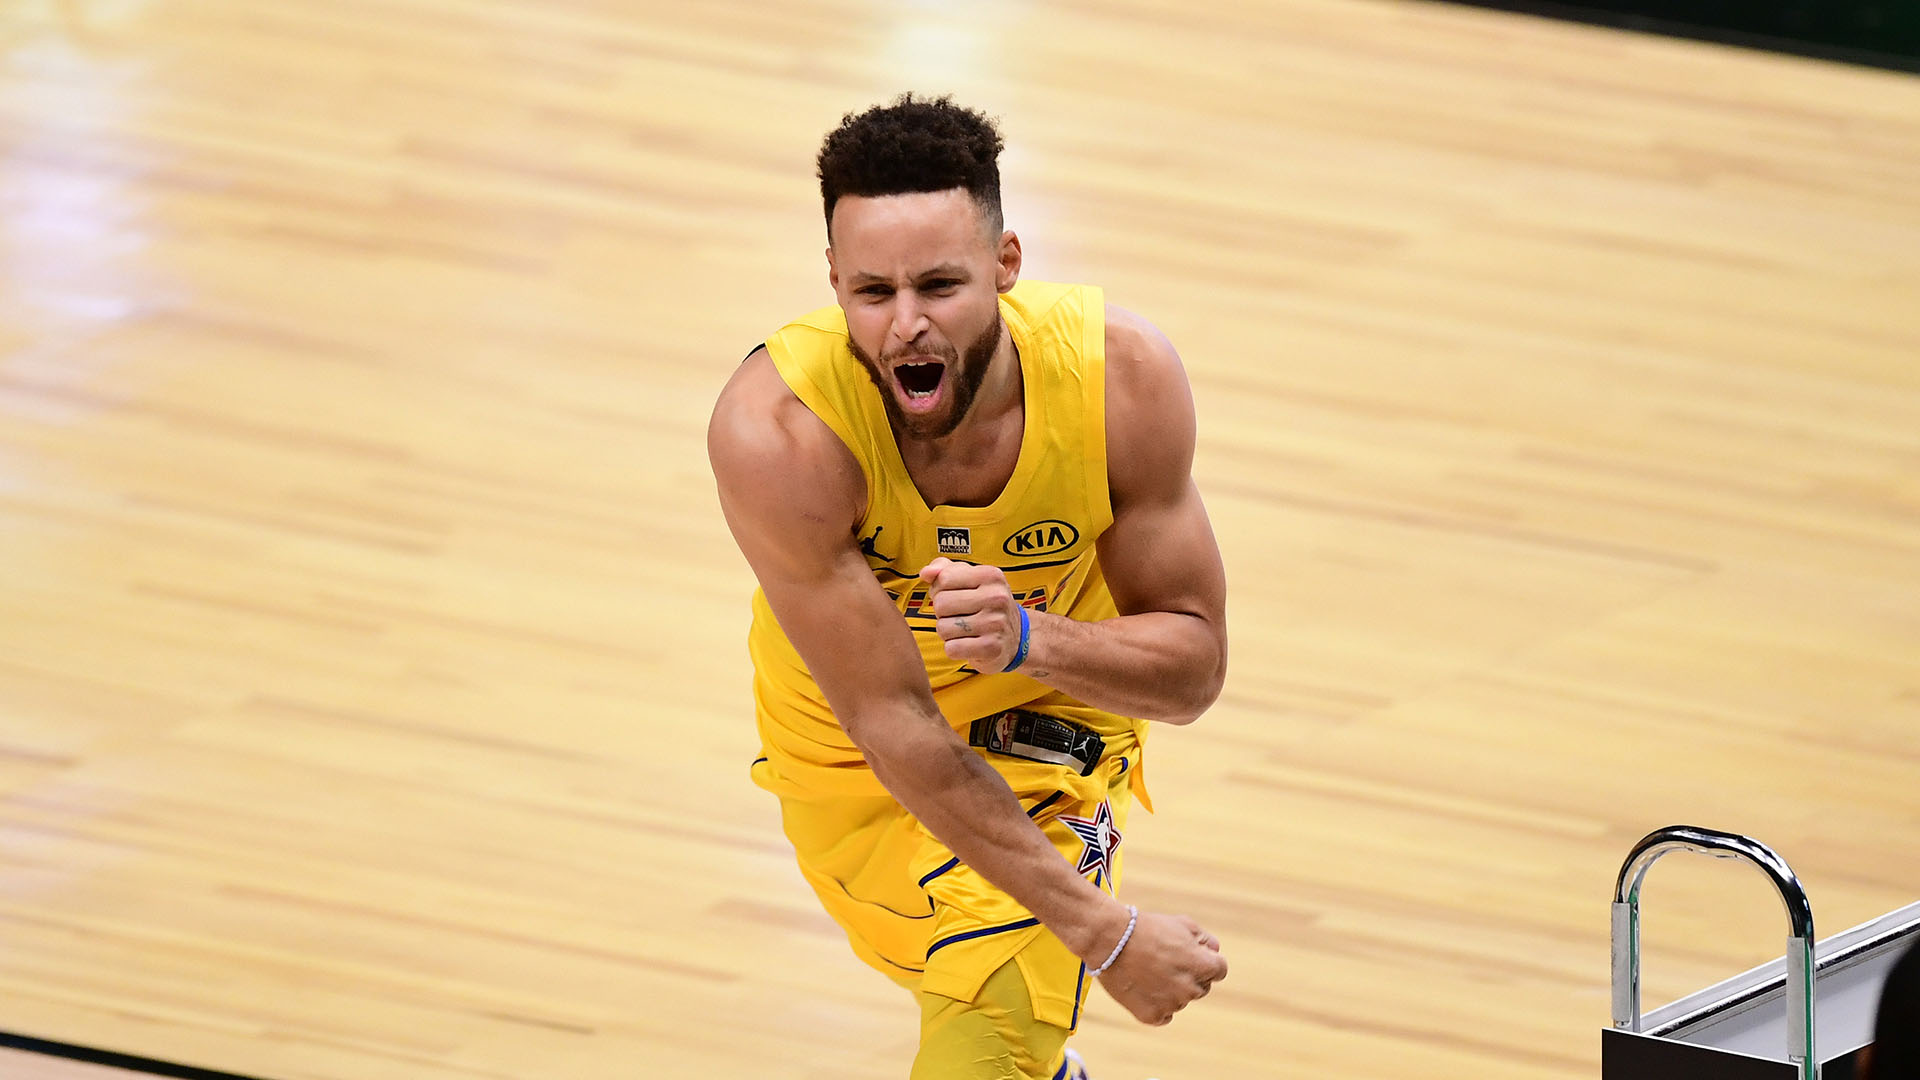 Warriors' Stephen Curry wins 2021 MTN DEW 3-Point Contest